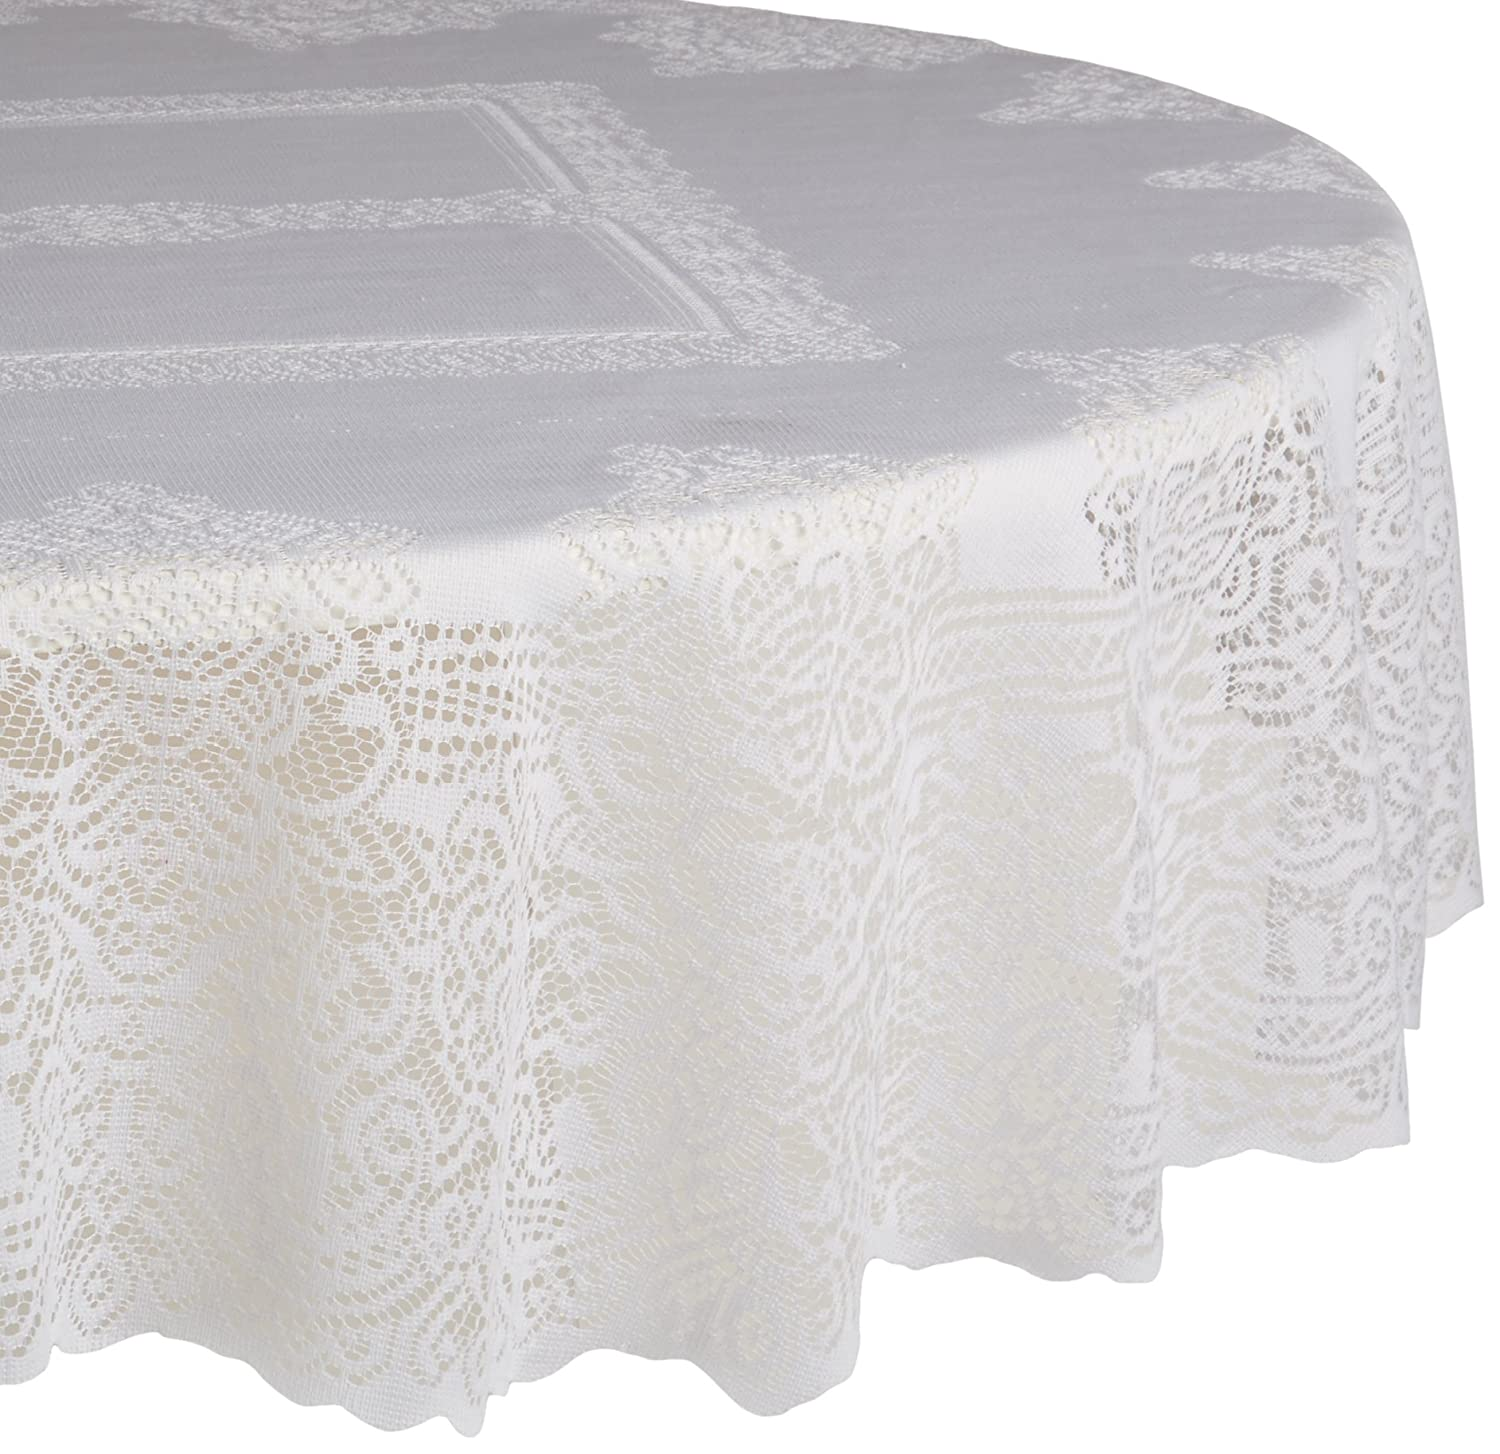 White Victorian Lace Round Tablecloth Overlay